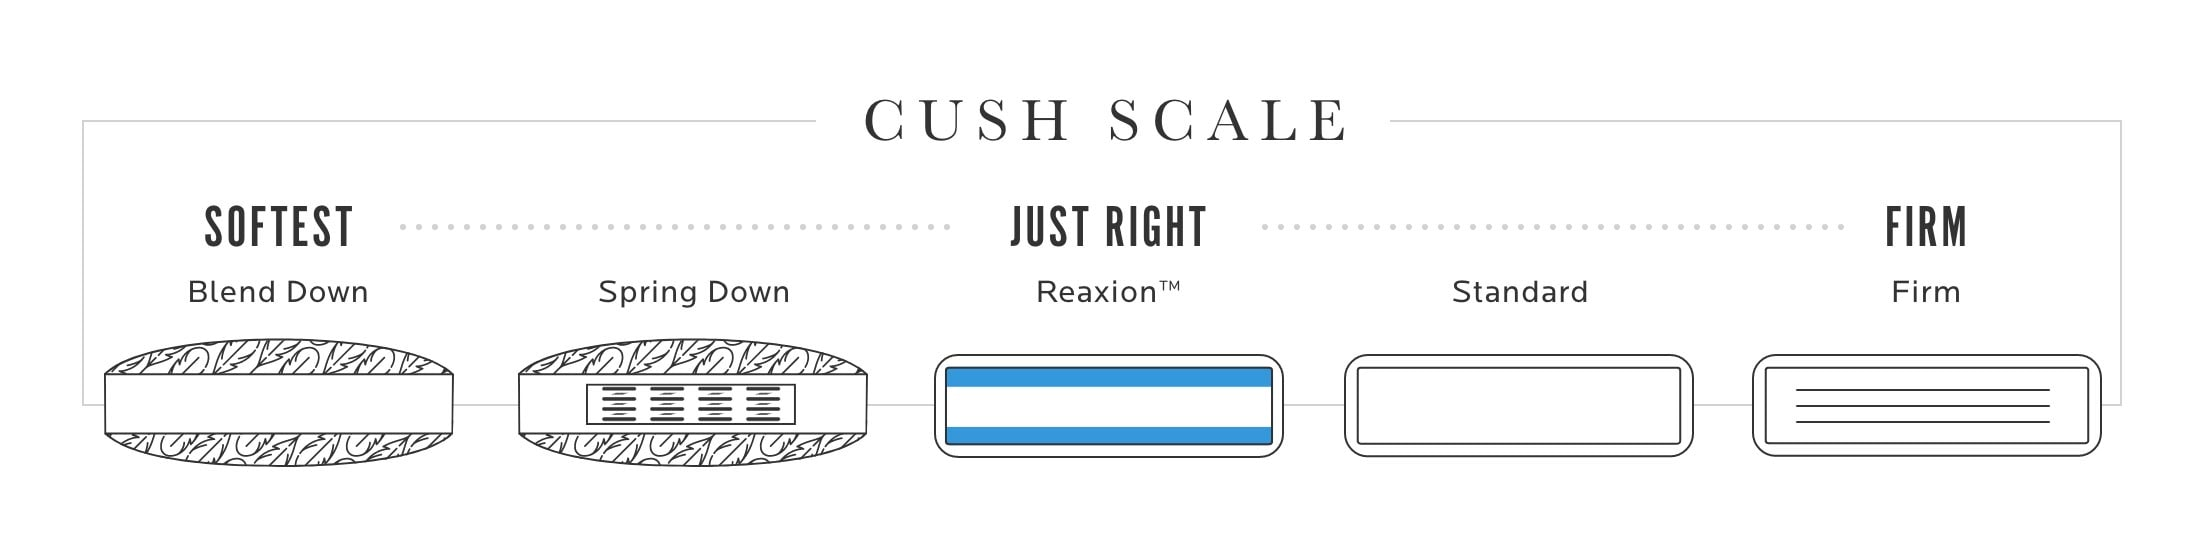 A Cush Scale. Softest to Firm.